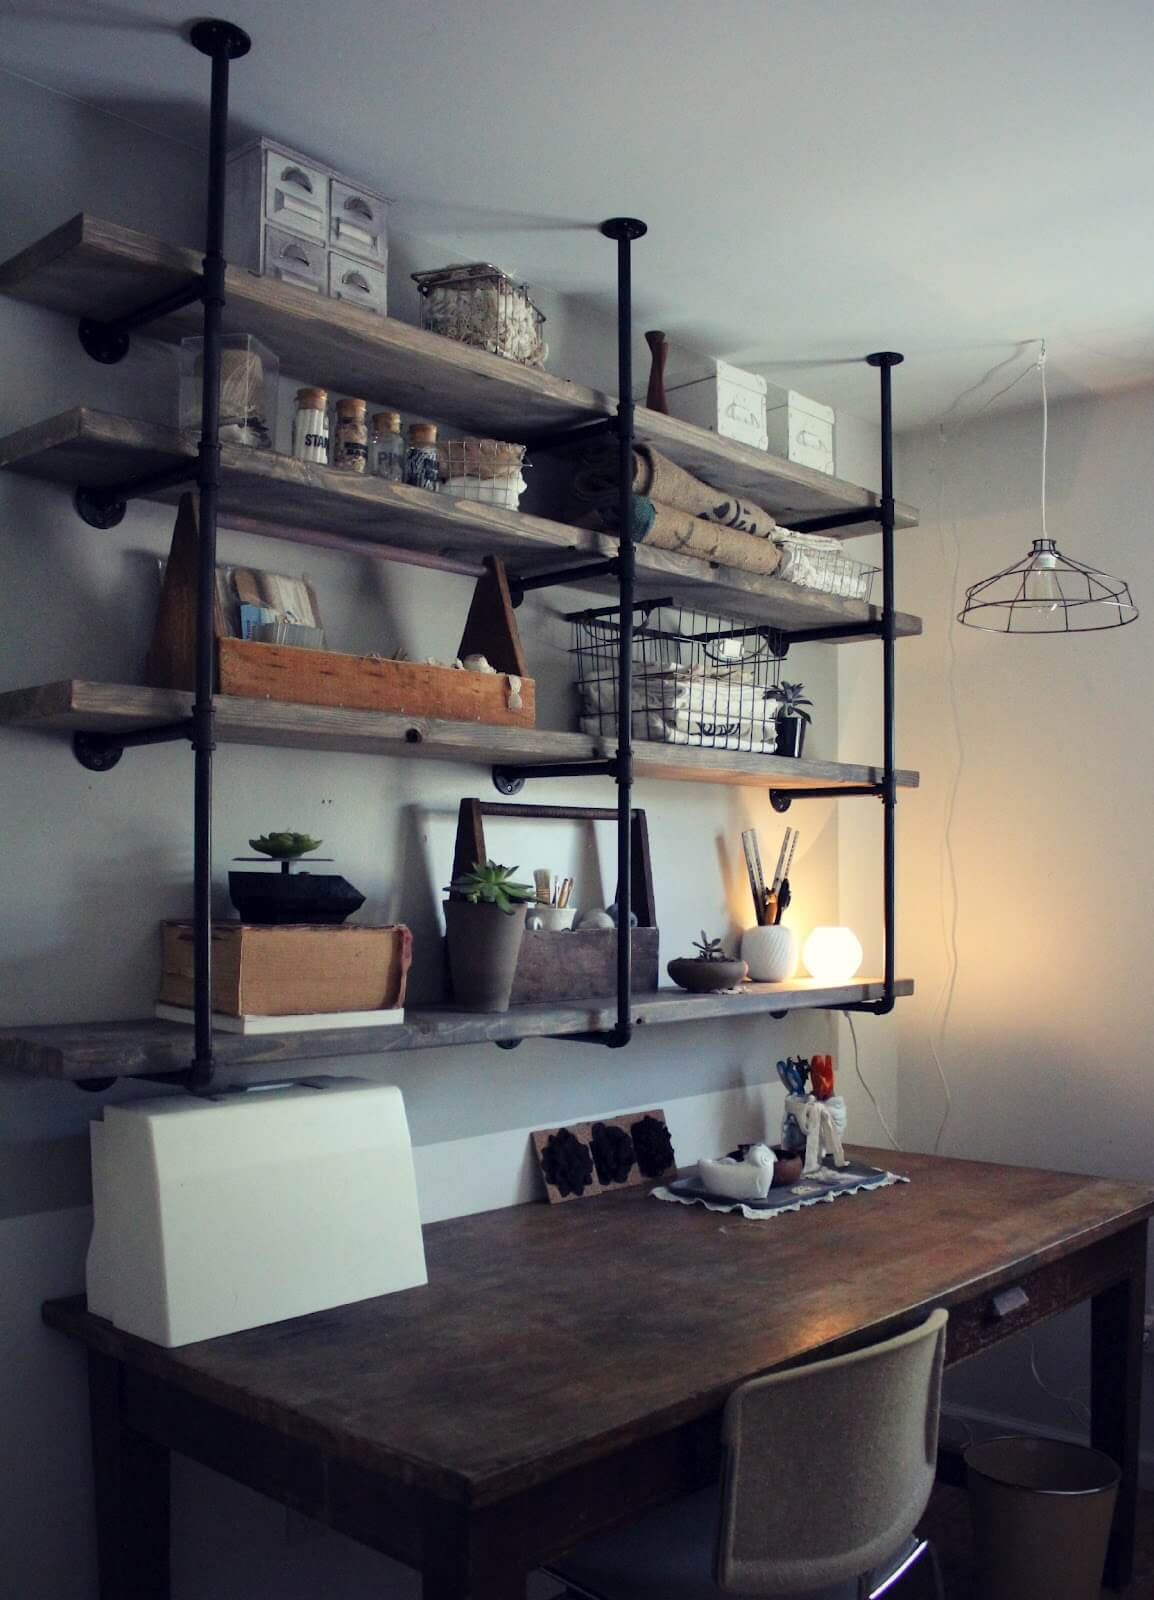 Rustic Ceiling-Mounted Wood and Pipe Craft Shelves